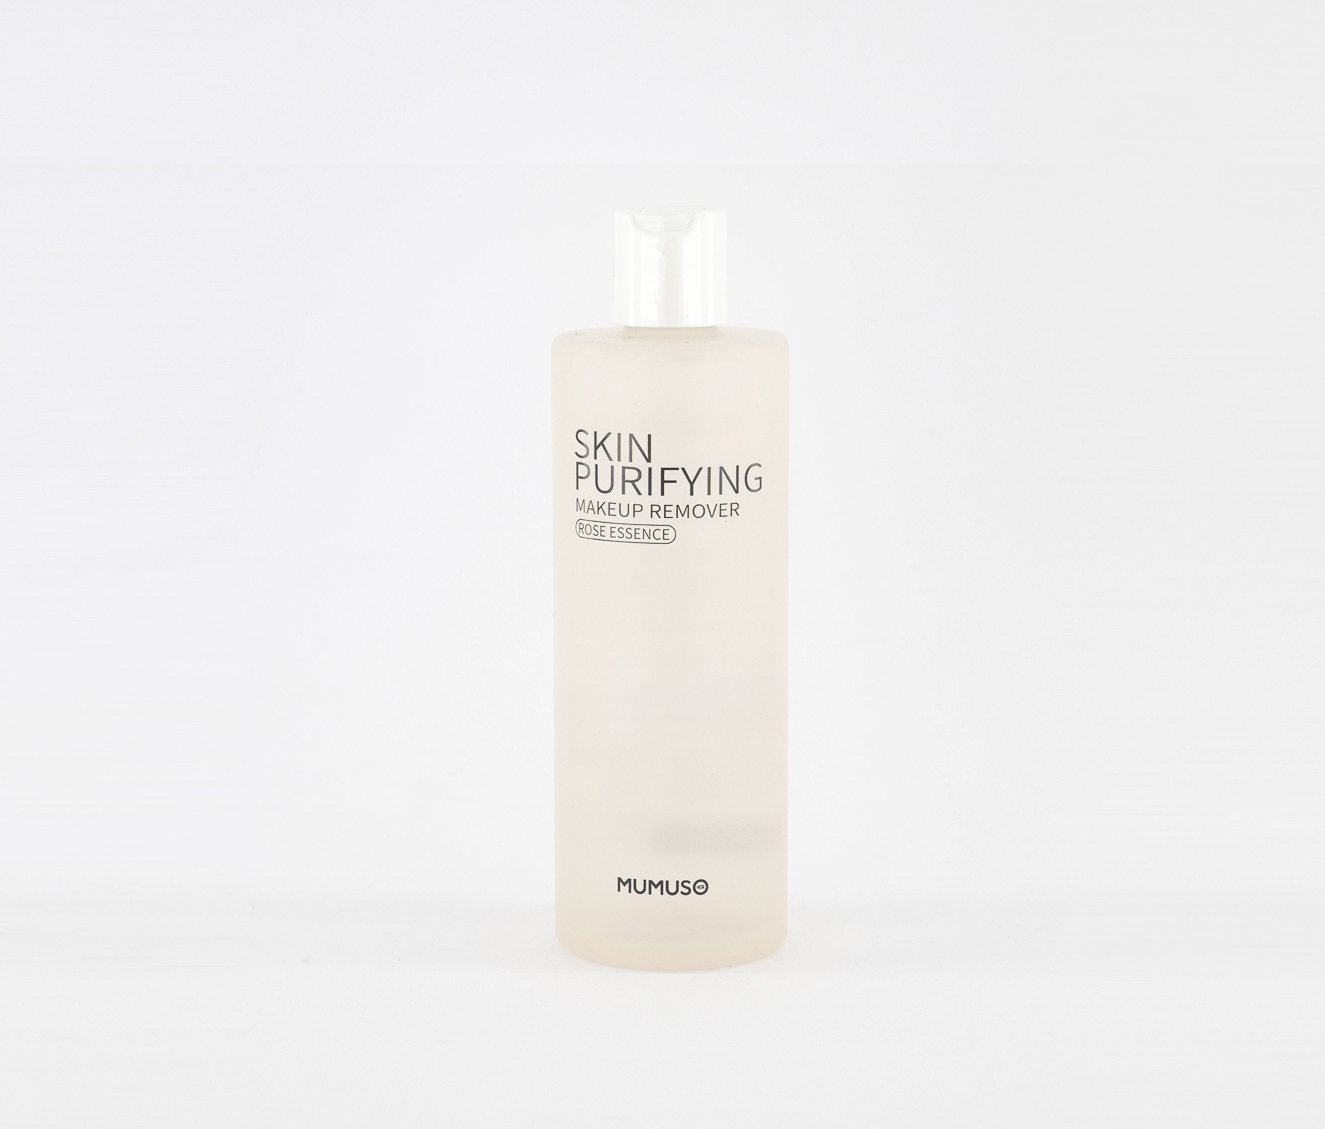 Skin Purifying Makeup Remover, 350ml